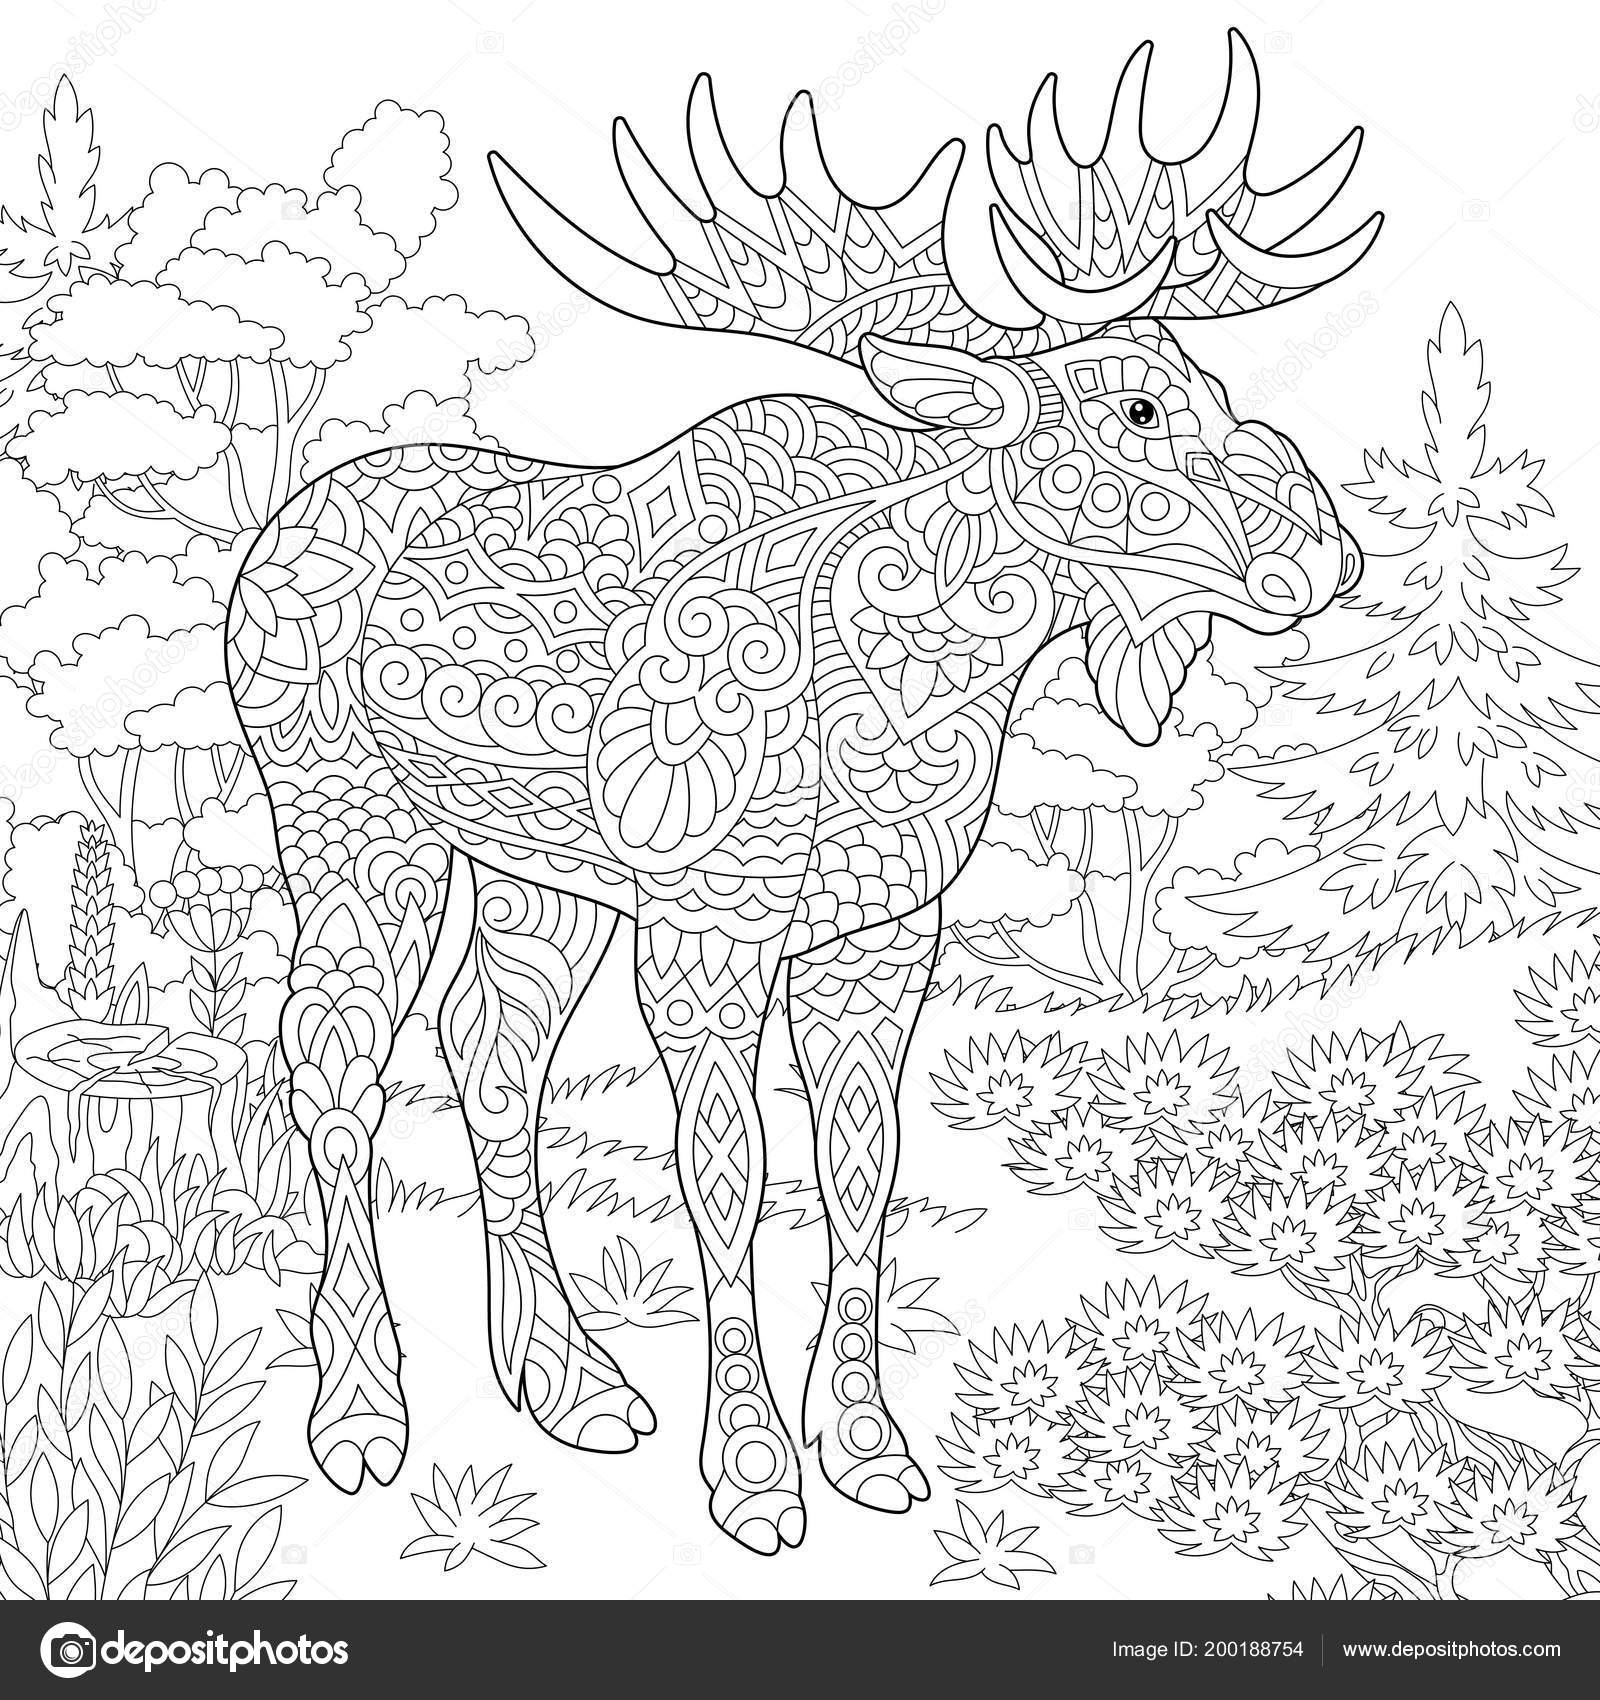 pictures printable moose  moose woodland animal forest